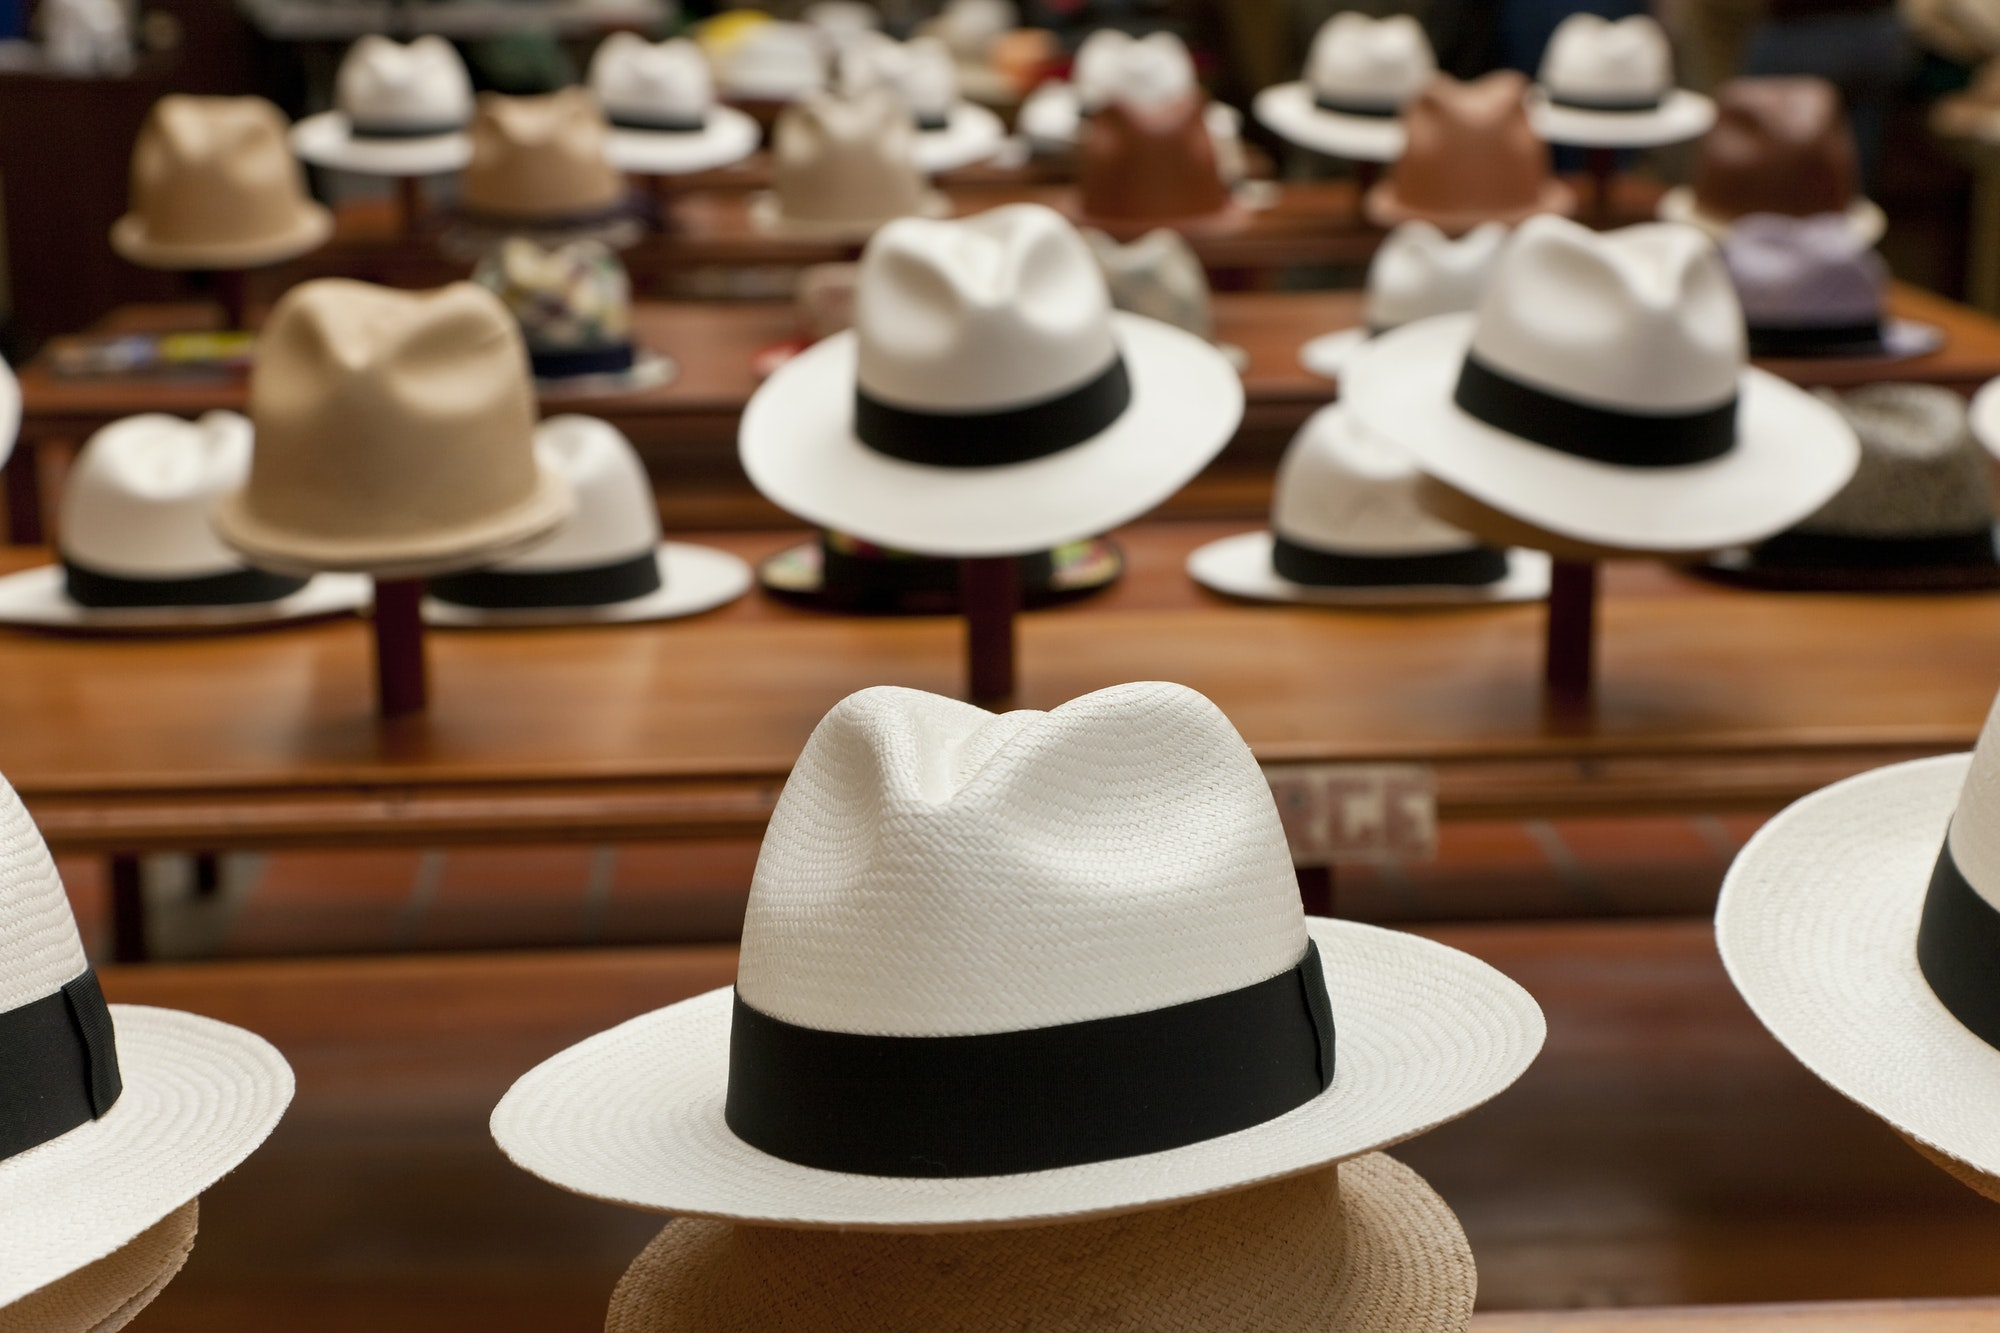 Rows of Panama hats on display in a shop.